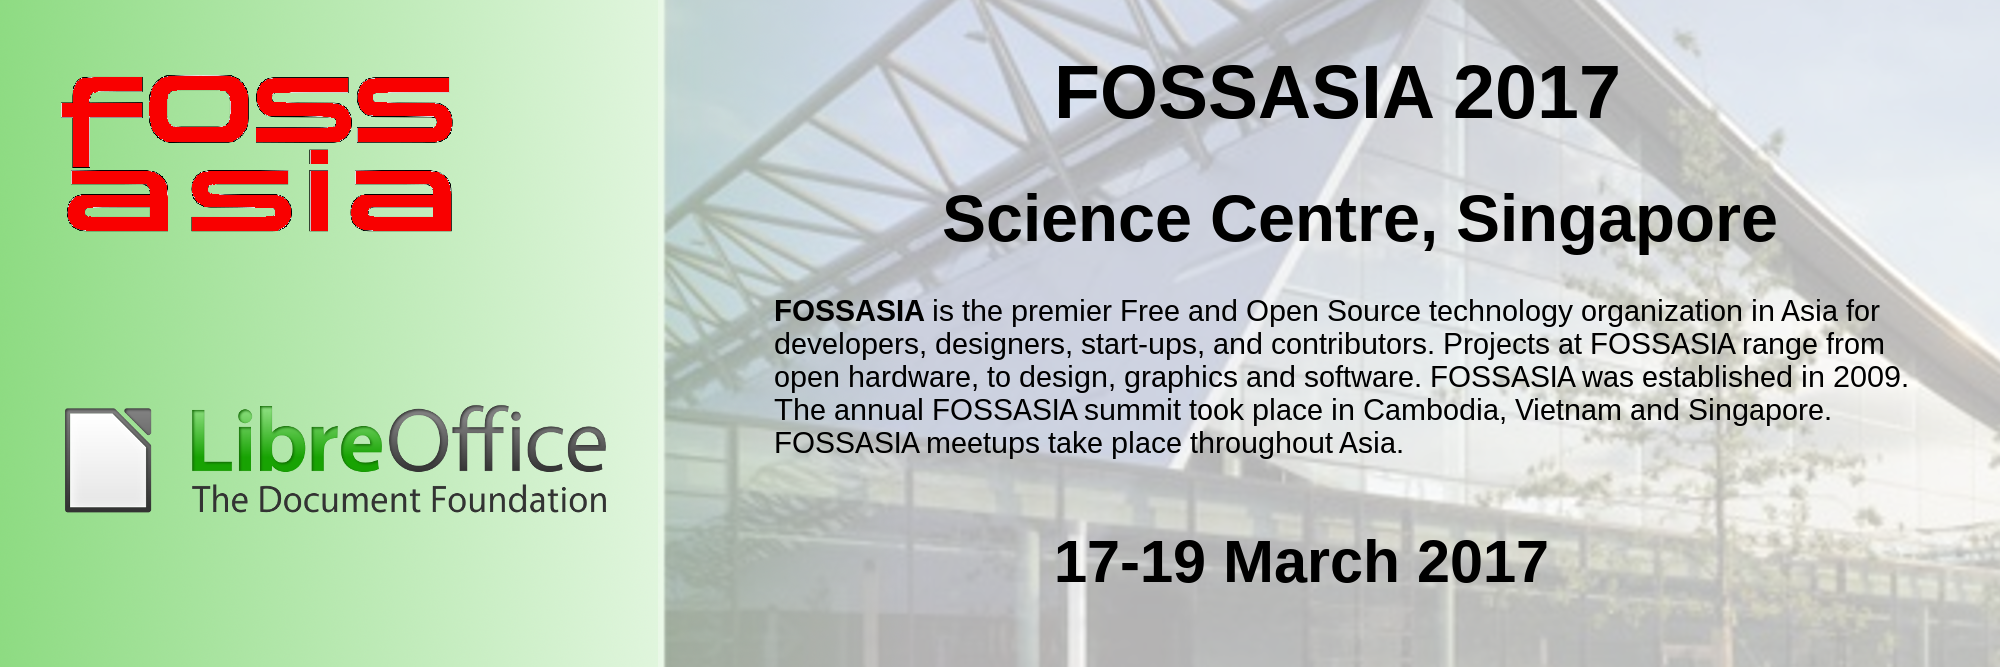 03 17 19Mar2017 FOSSASIA Singapore